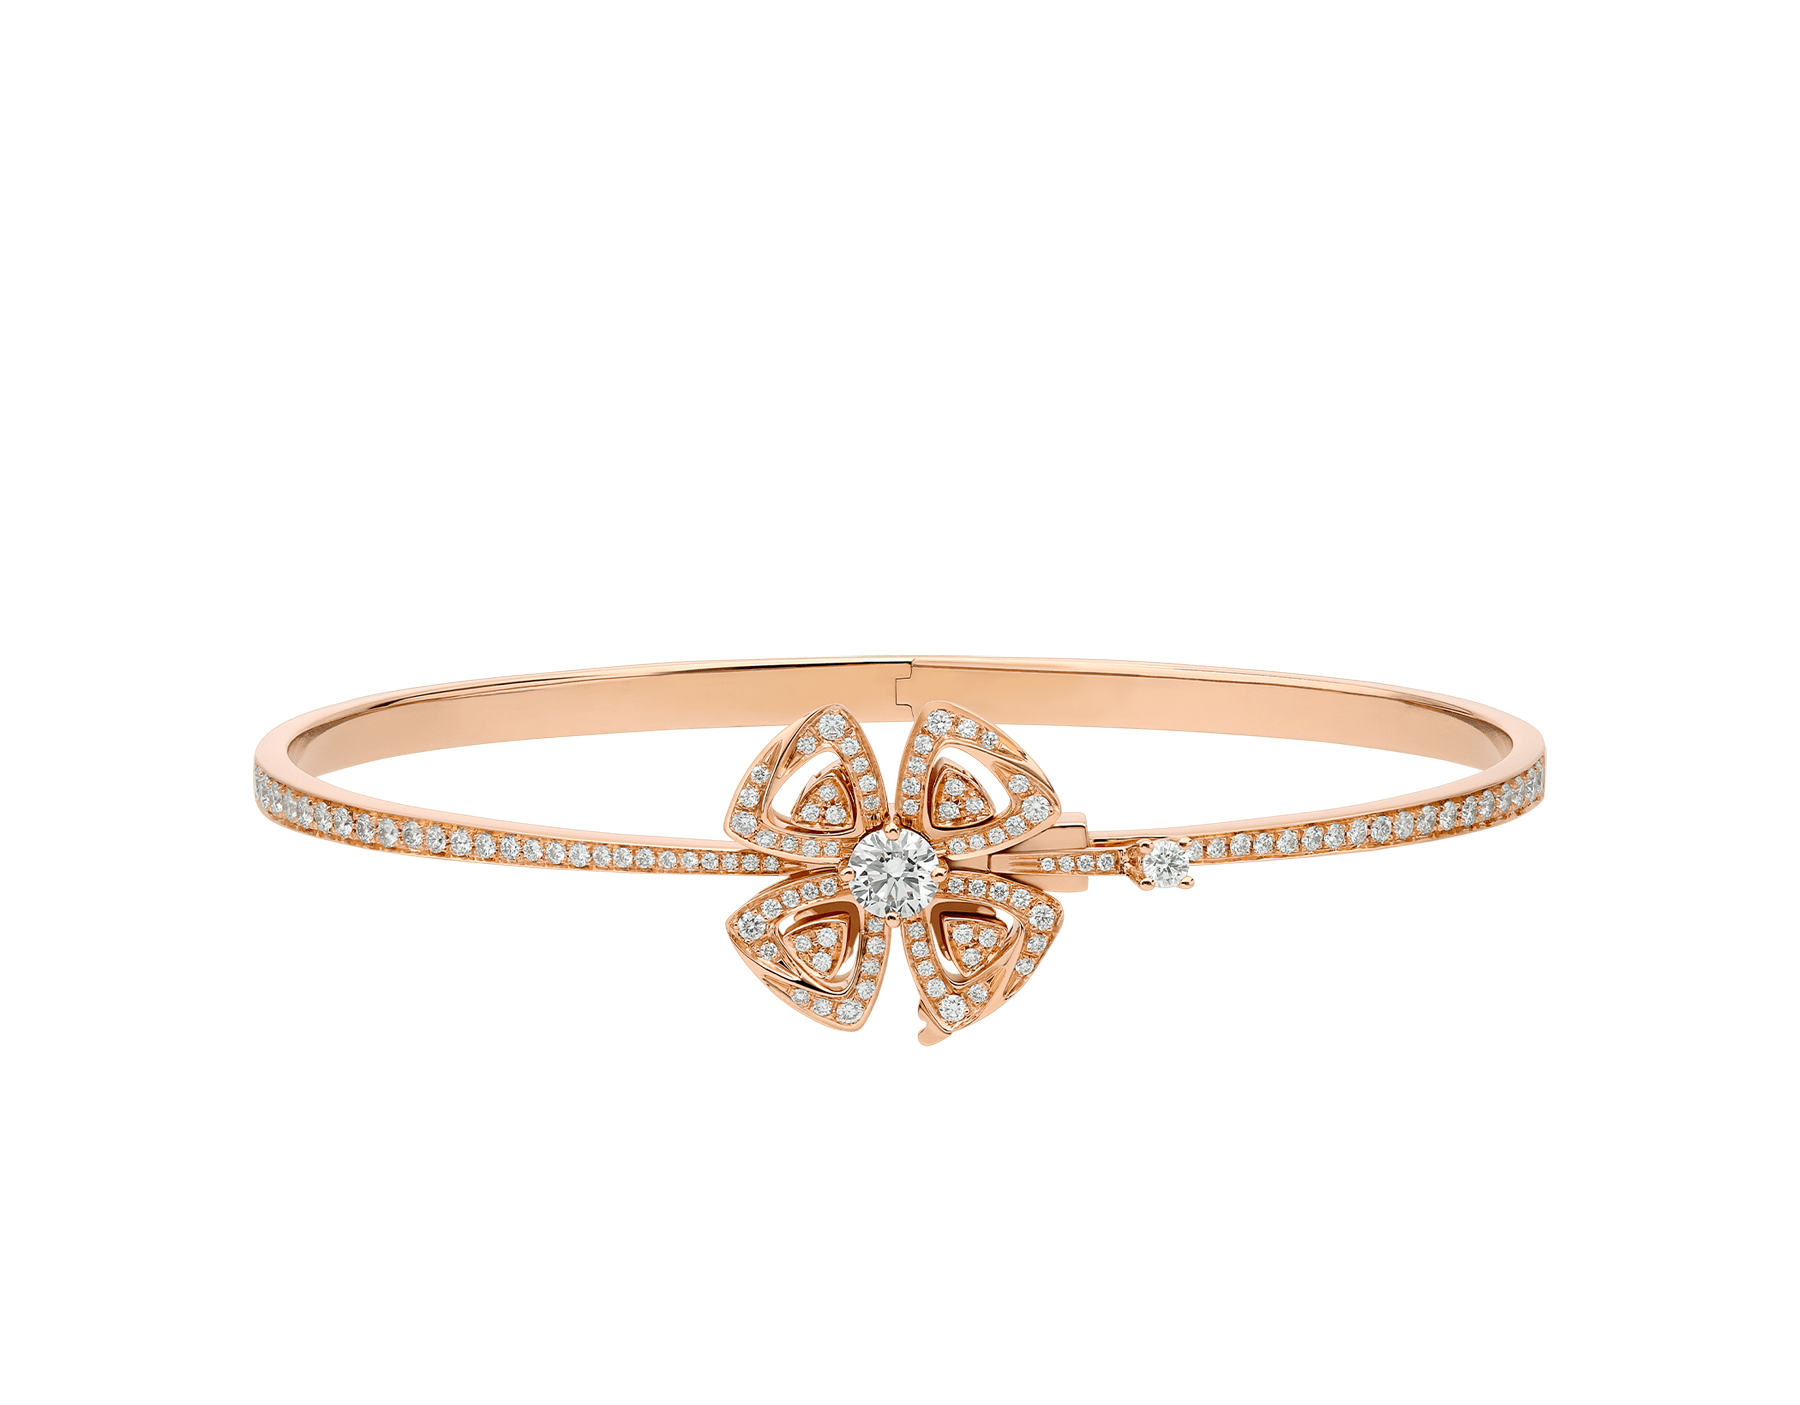 Fiorever 18 kt rose gold bracelet set with a central diamond (0.30 ct) and pavé diamonds (0.63 ct) BR858707 image 2